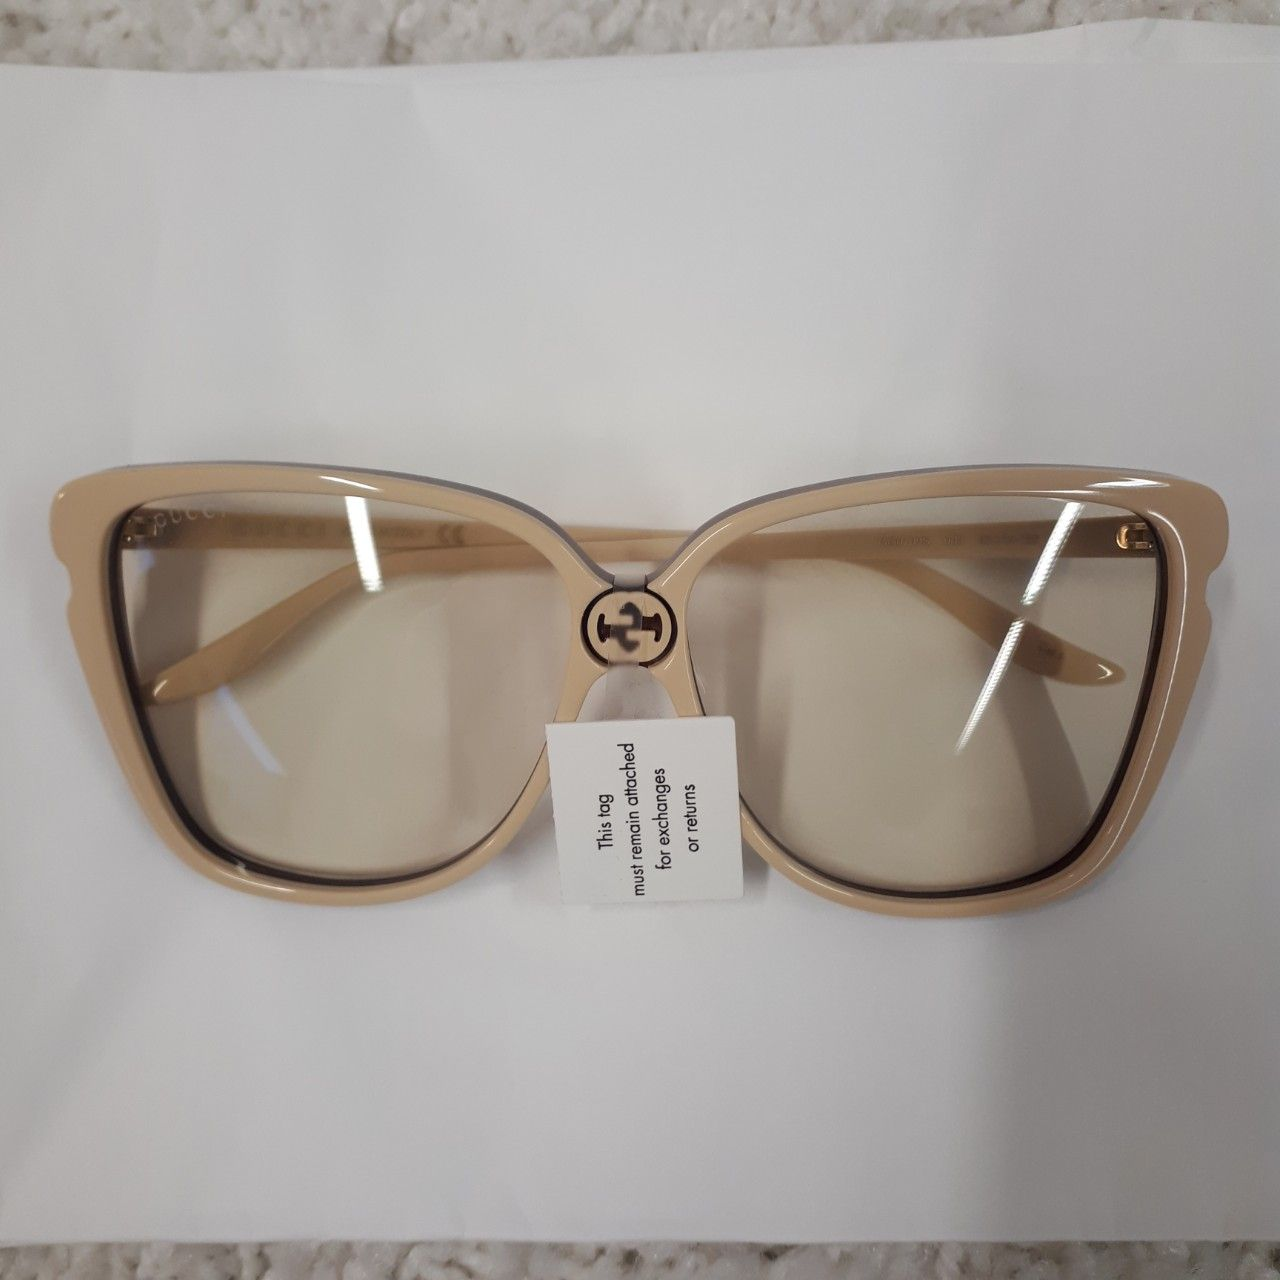 Gucci Square acetate sunglasses ivory acetate Style # 610893 J0740 9274